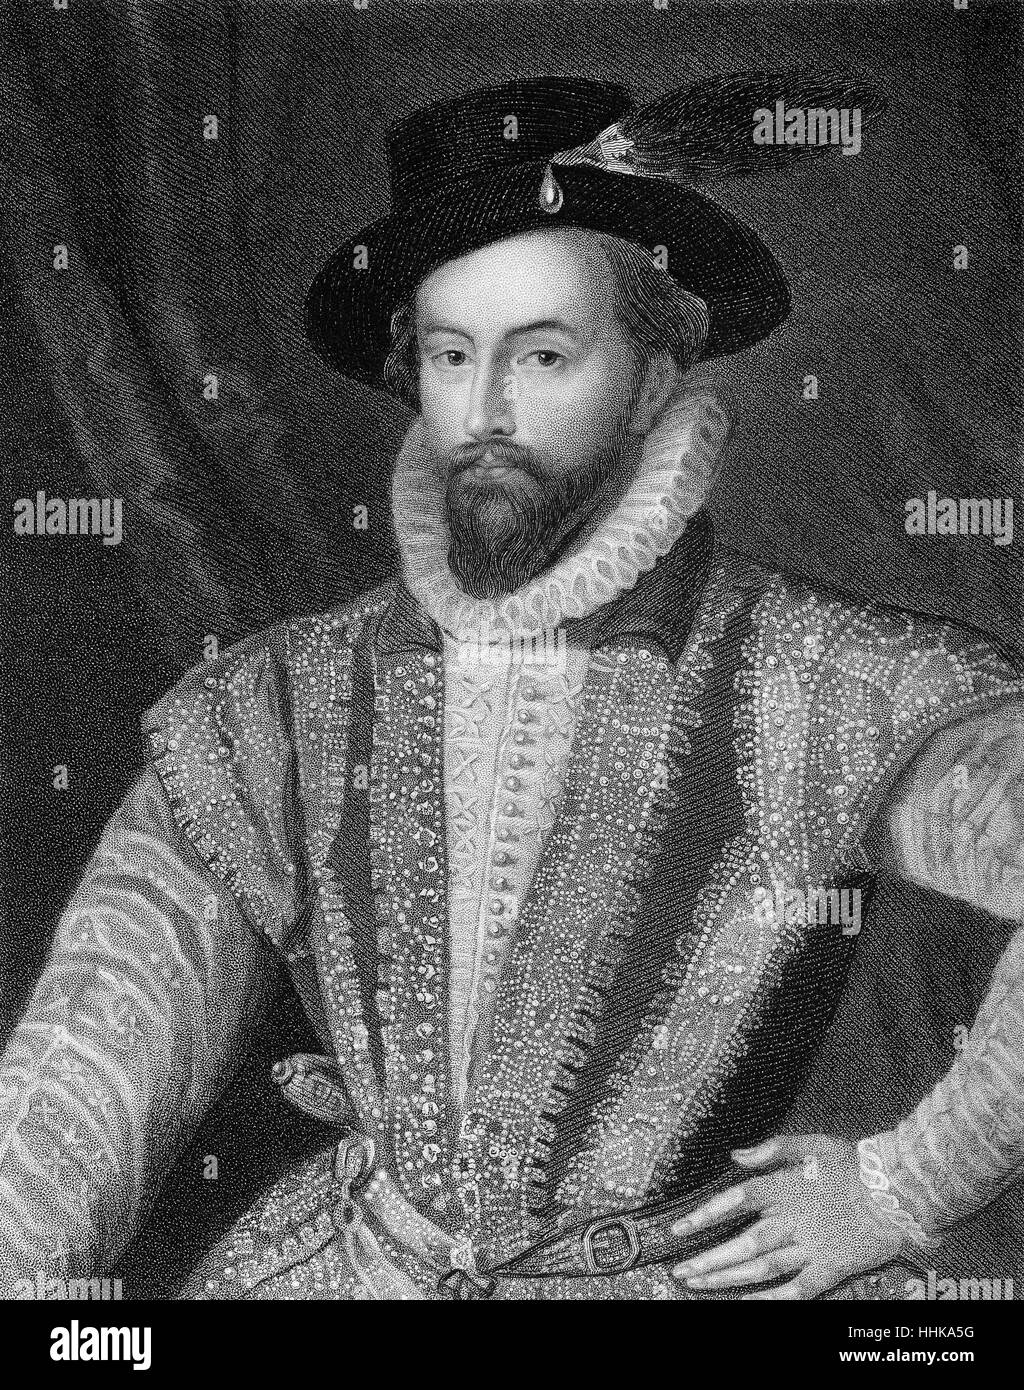 Sir Walter Raleigh, 1554 - 1618, an English aristocrat, writer, poet and explorer - Stock Image